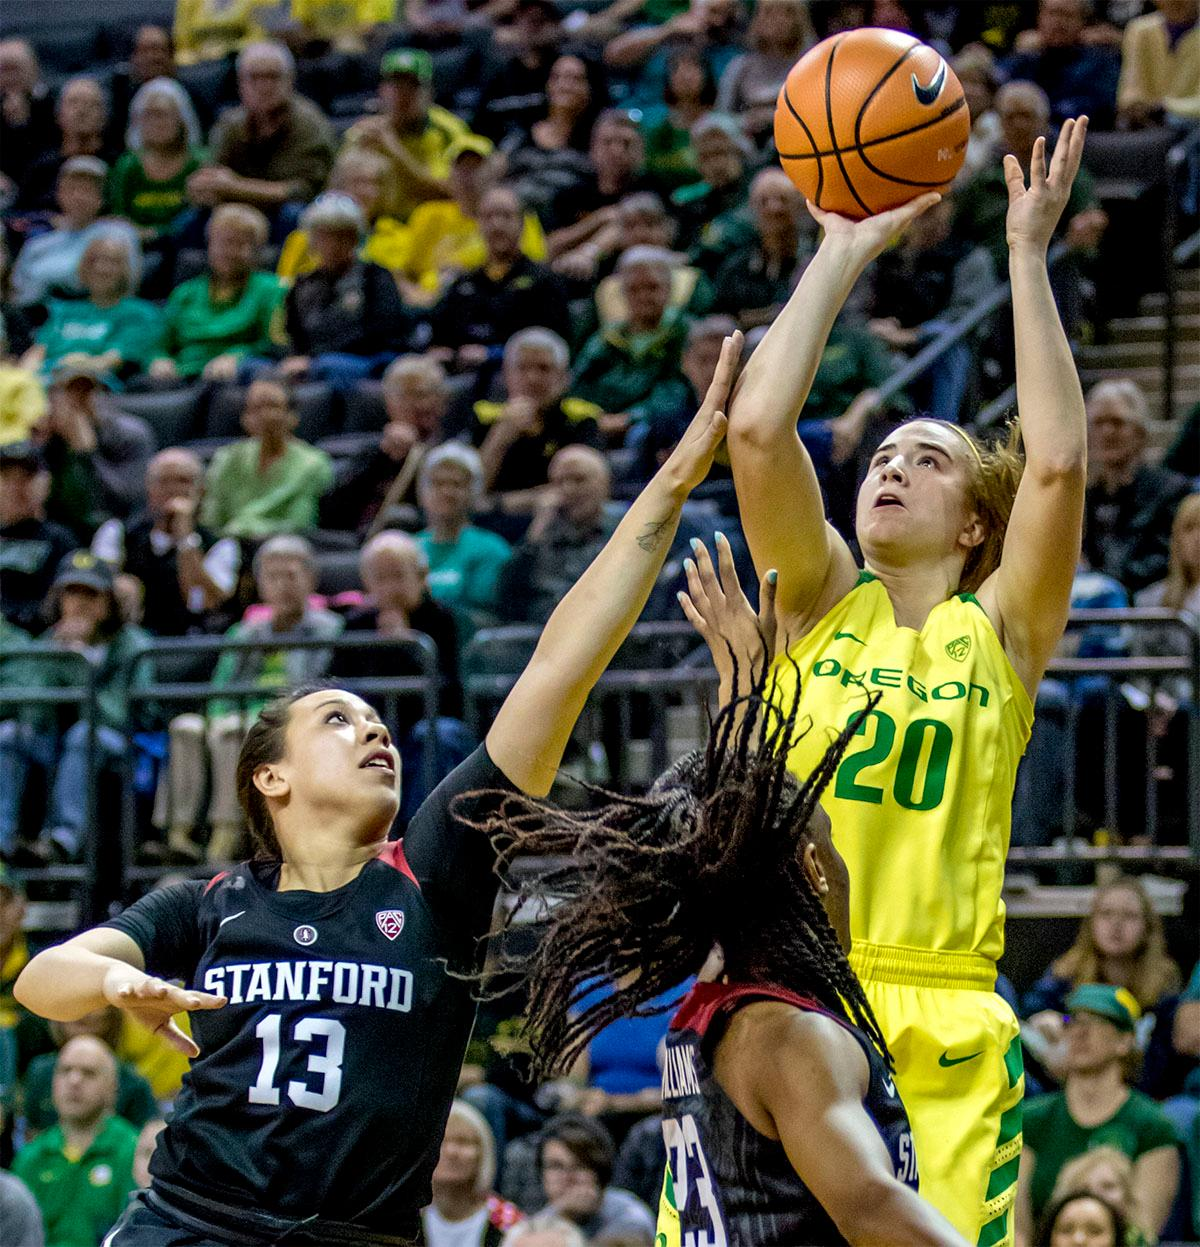 The Duck's Sabrina Ionescu (#20) goes for a jump shot. The Stanford Cardinal defeated the Oregon Ducks 78-65 on Sunday afternoon at Matthew Knight Arena. Stanford is now 10-2 in conference play and with this loss the Ducks drop to 10-2. Leading the Stanford Cardinal was Brittany McPhee with 33 points, Alanna Smith with 14 points, and Kiana Williams with 14 points. For the Ducks Sabrina Ionescu led with 22 points, Ruthy Hebard added 16 points, and Satou Sabally put in 14 points. Photo by August Frank, Oregon News Lab